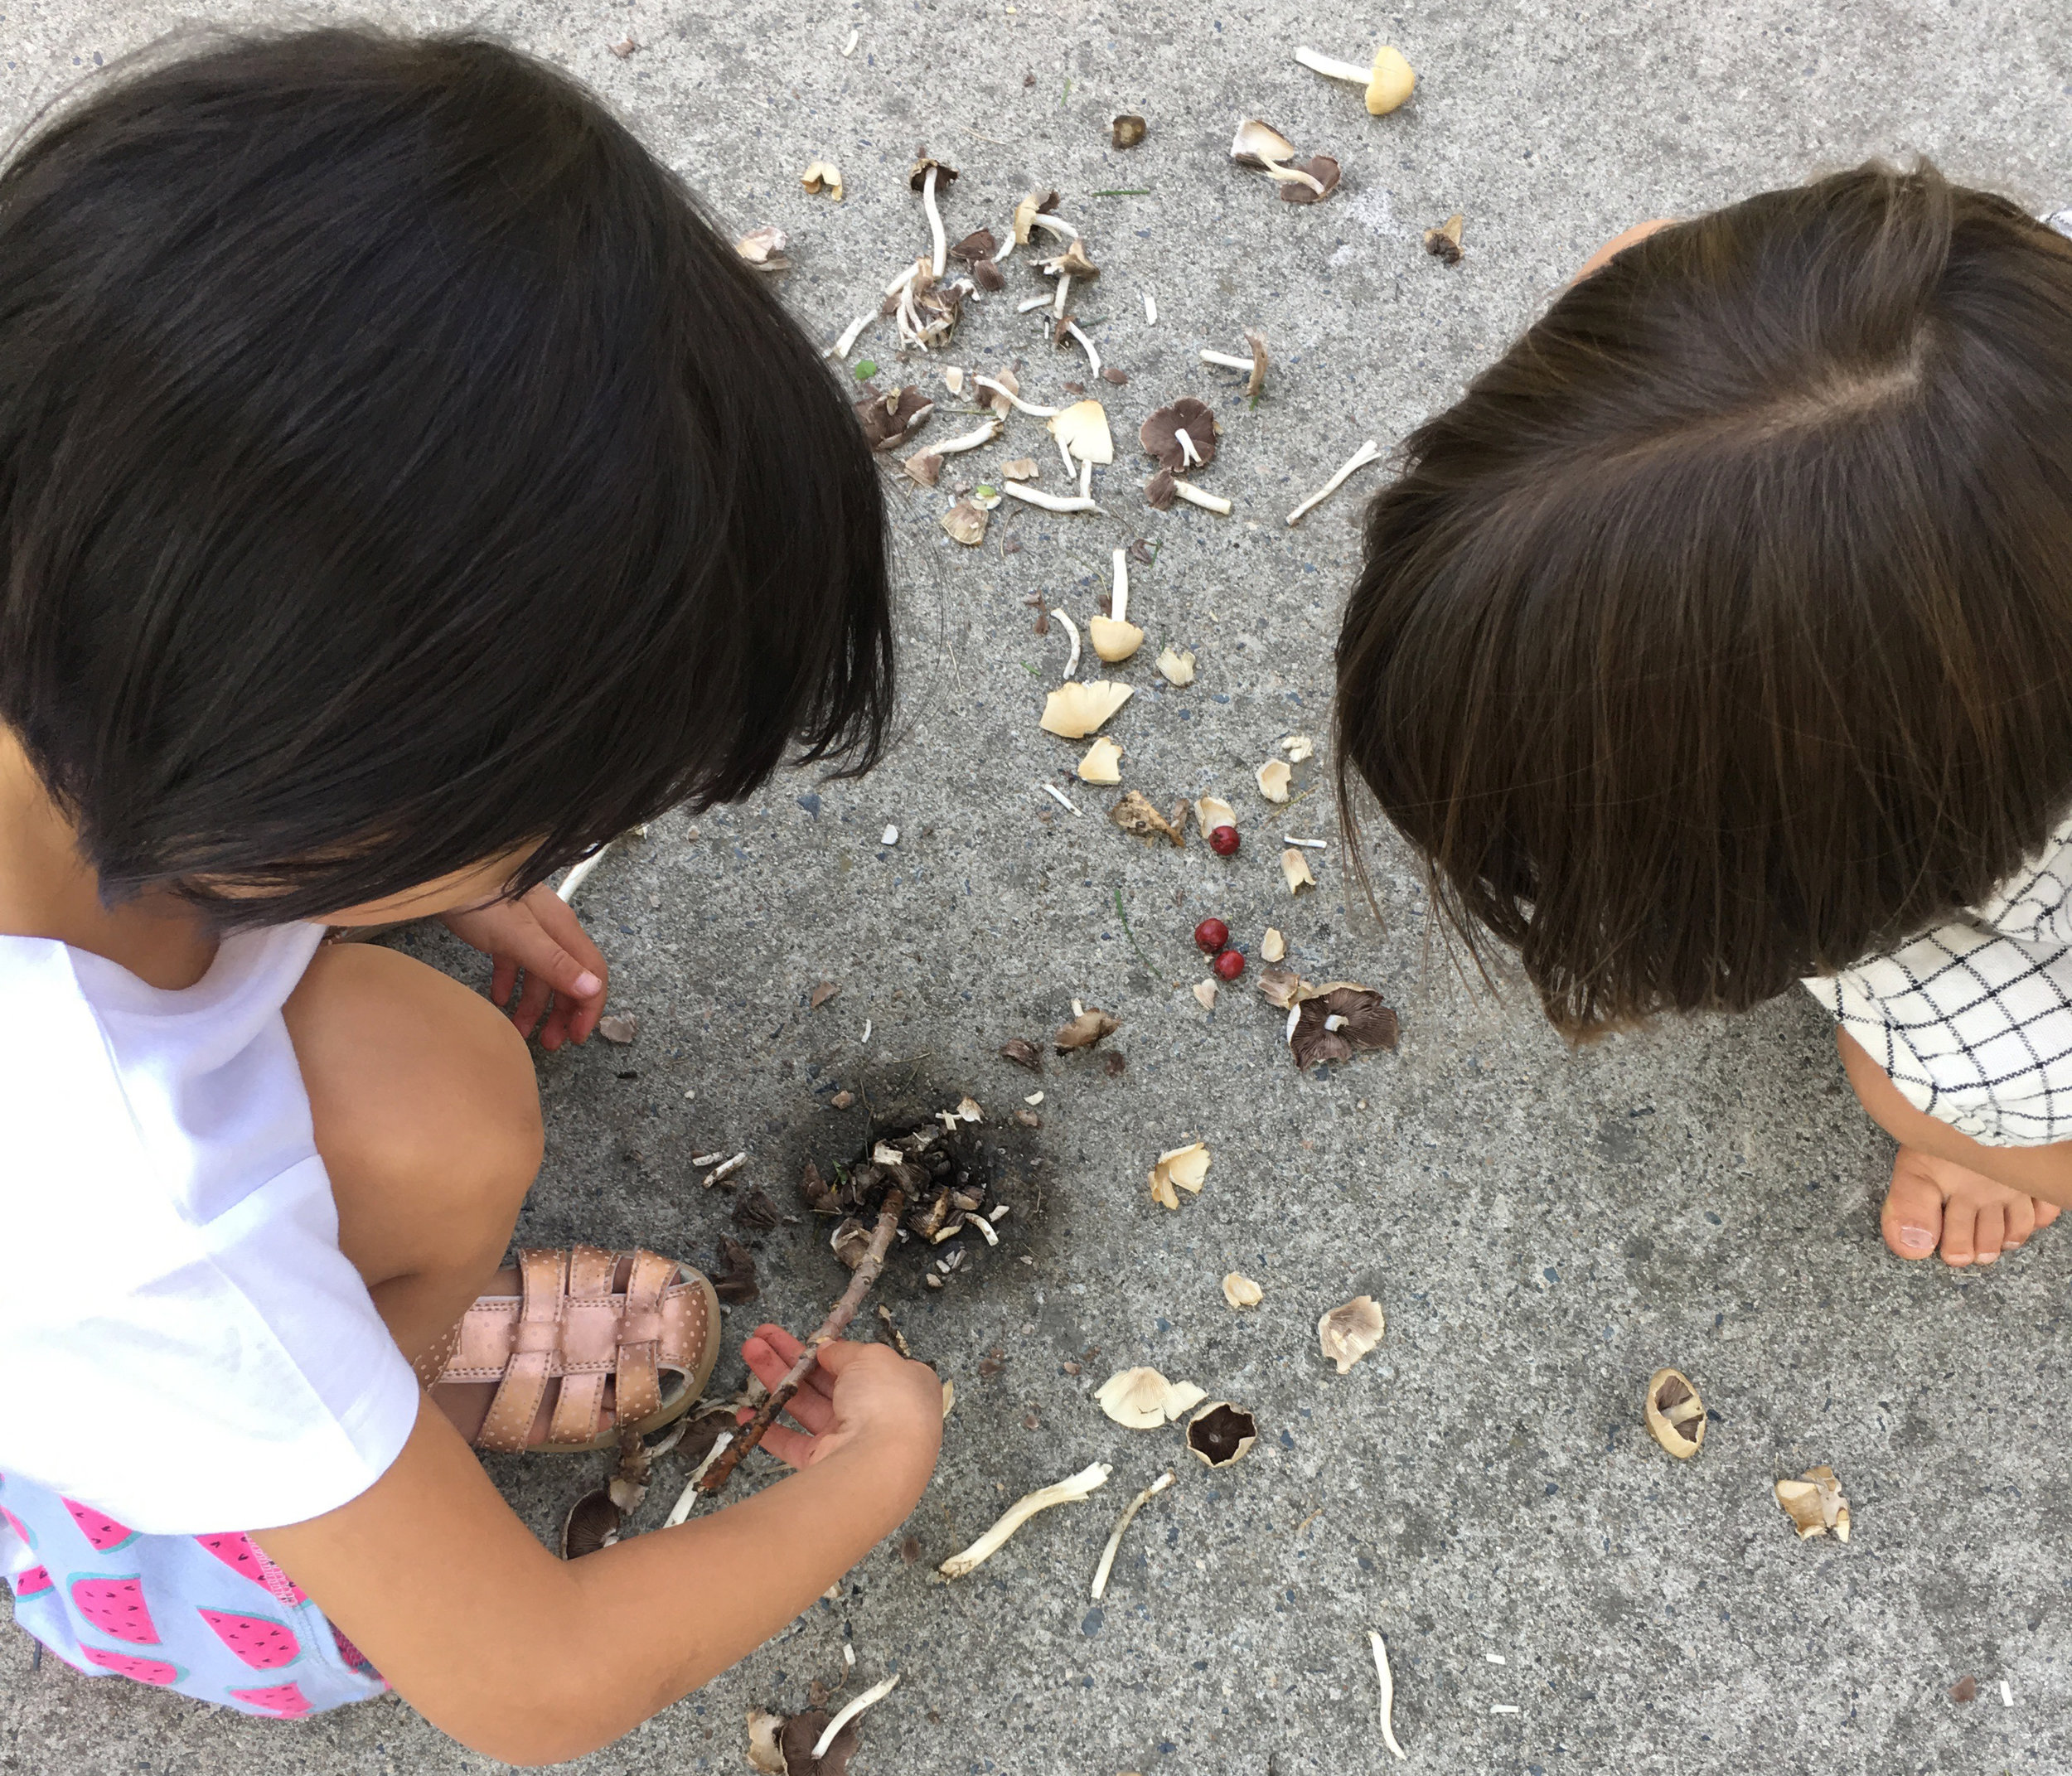 roots - ages 3-6